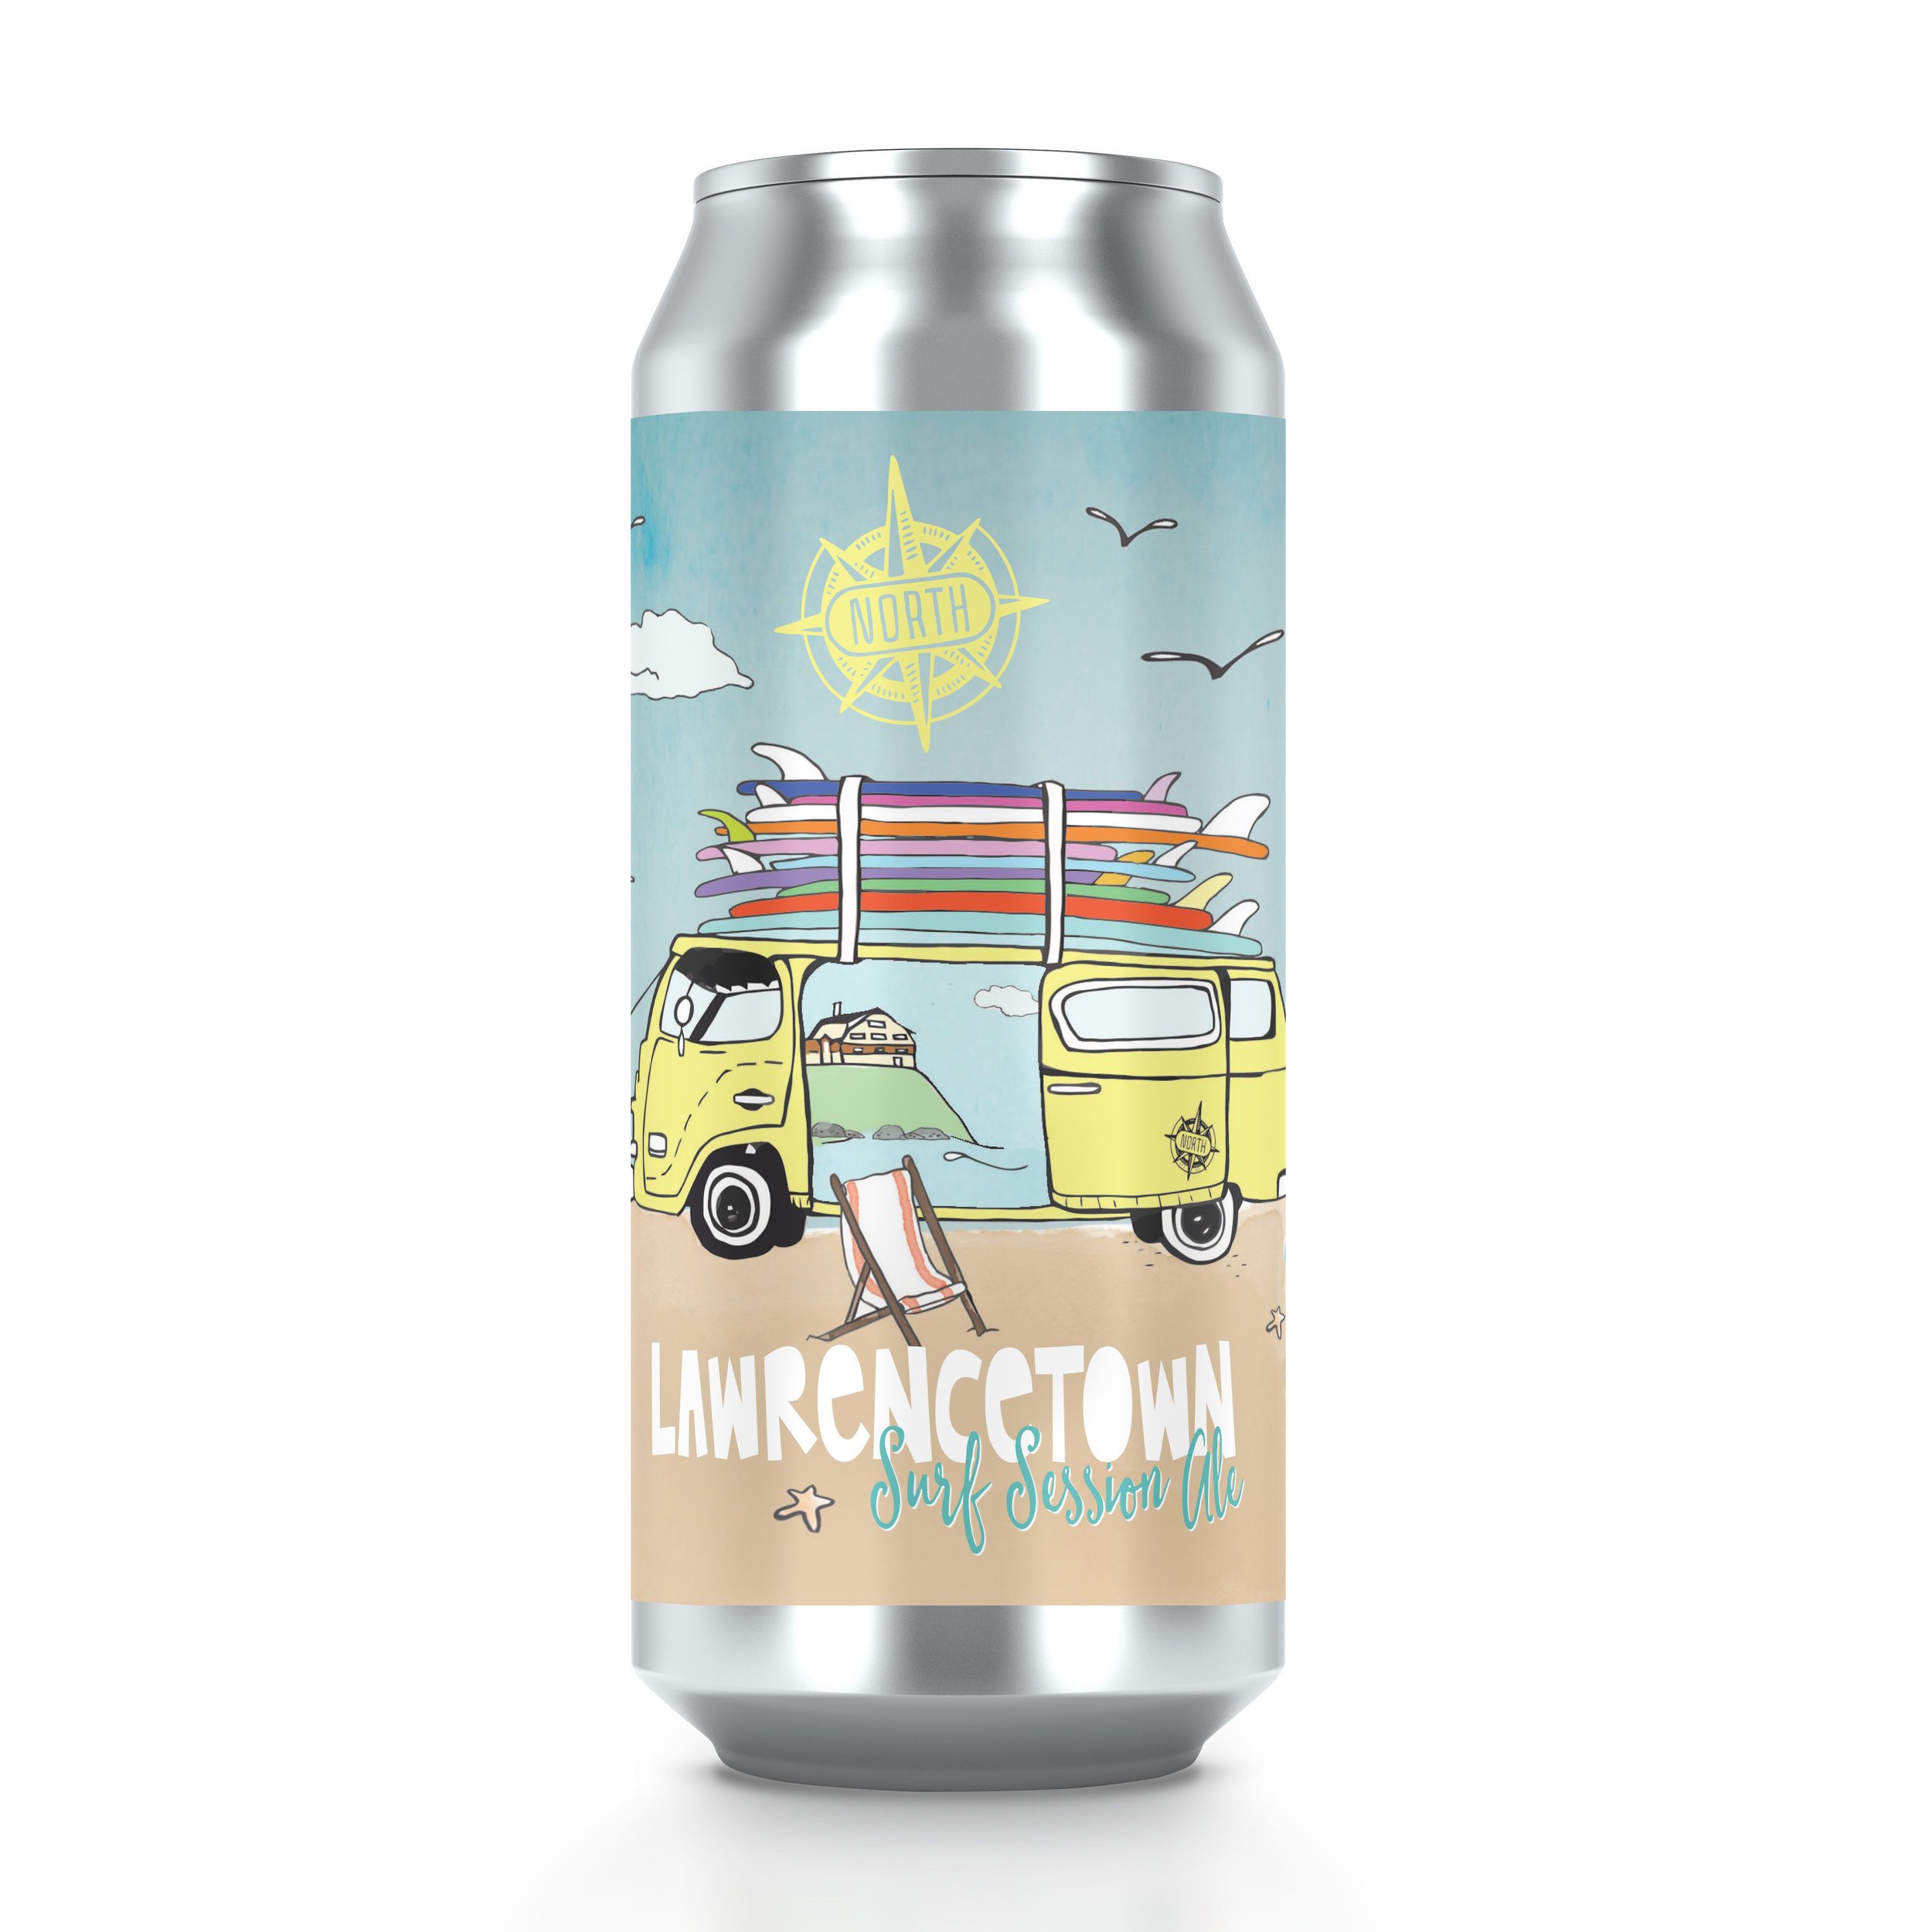 Lawrencetown Surf Session Ale - NE Pale Ale